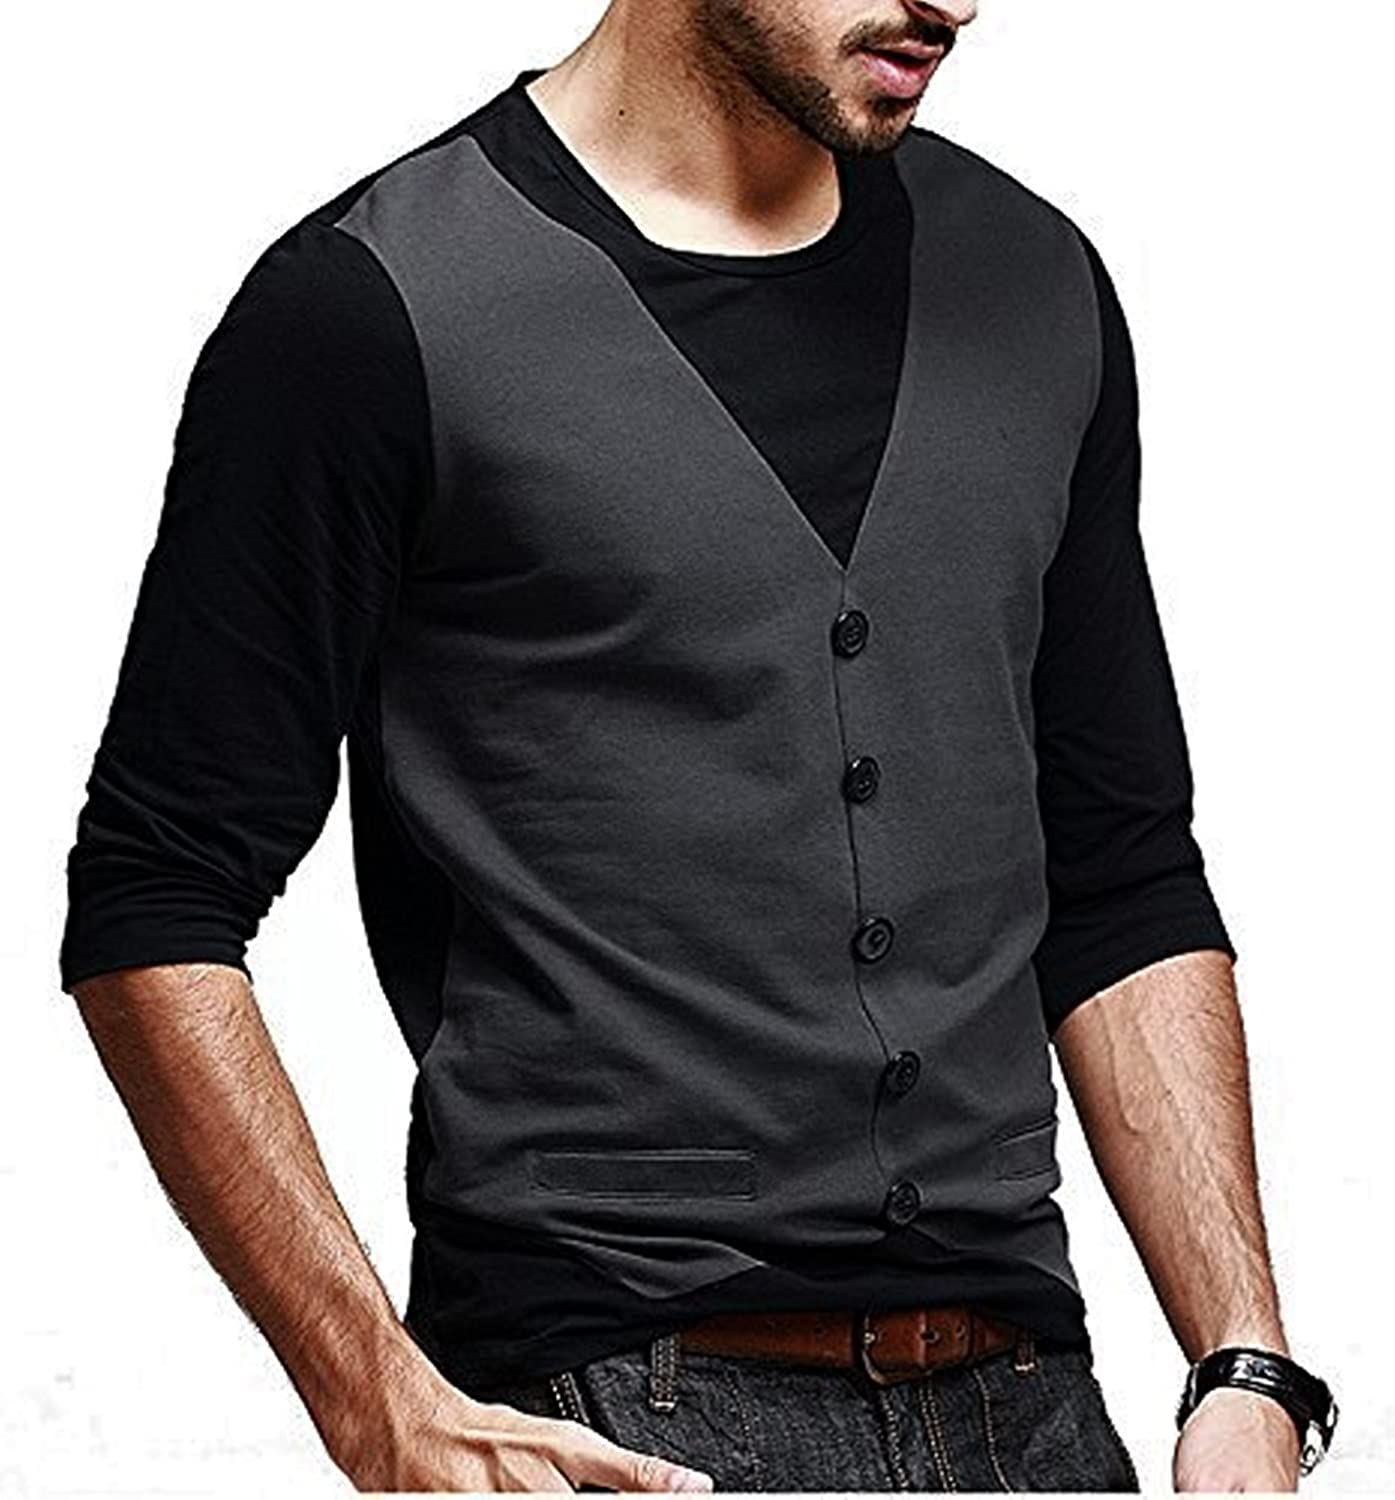 4e298568a Try This Cotton , Casual , Partywear Waistcoat Style T Shirt For Men And  Boys: Amazon.in: Clothing & Accessories